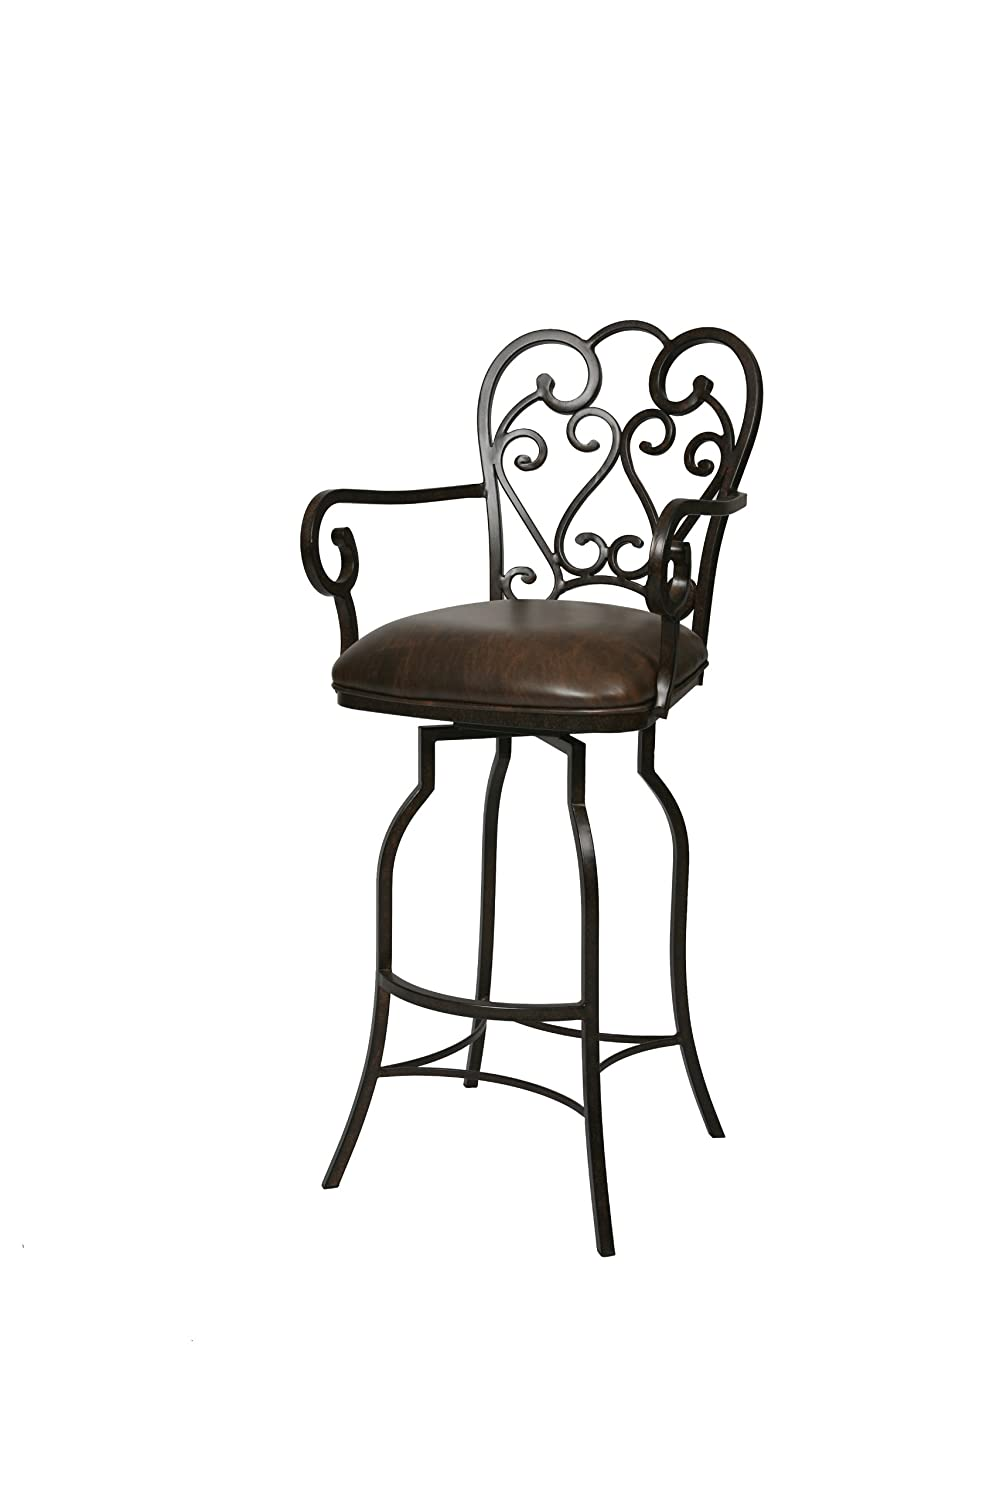 Groovy Amazon Com Plutus Brands Magnolia Swivel Barstool With Arms Ncnpc Chair Design For Home Ncnpcorg